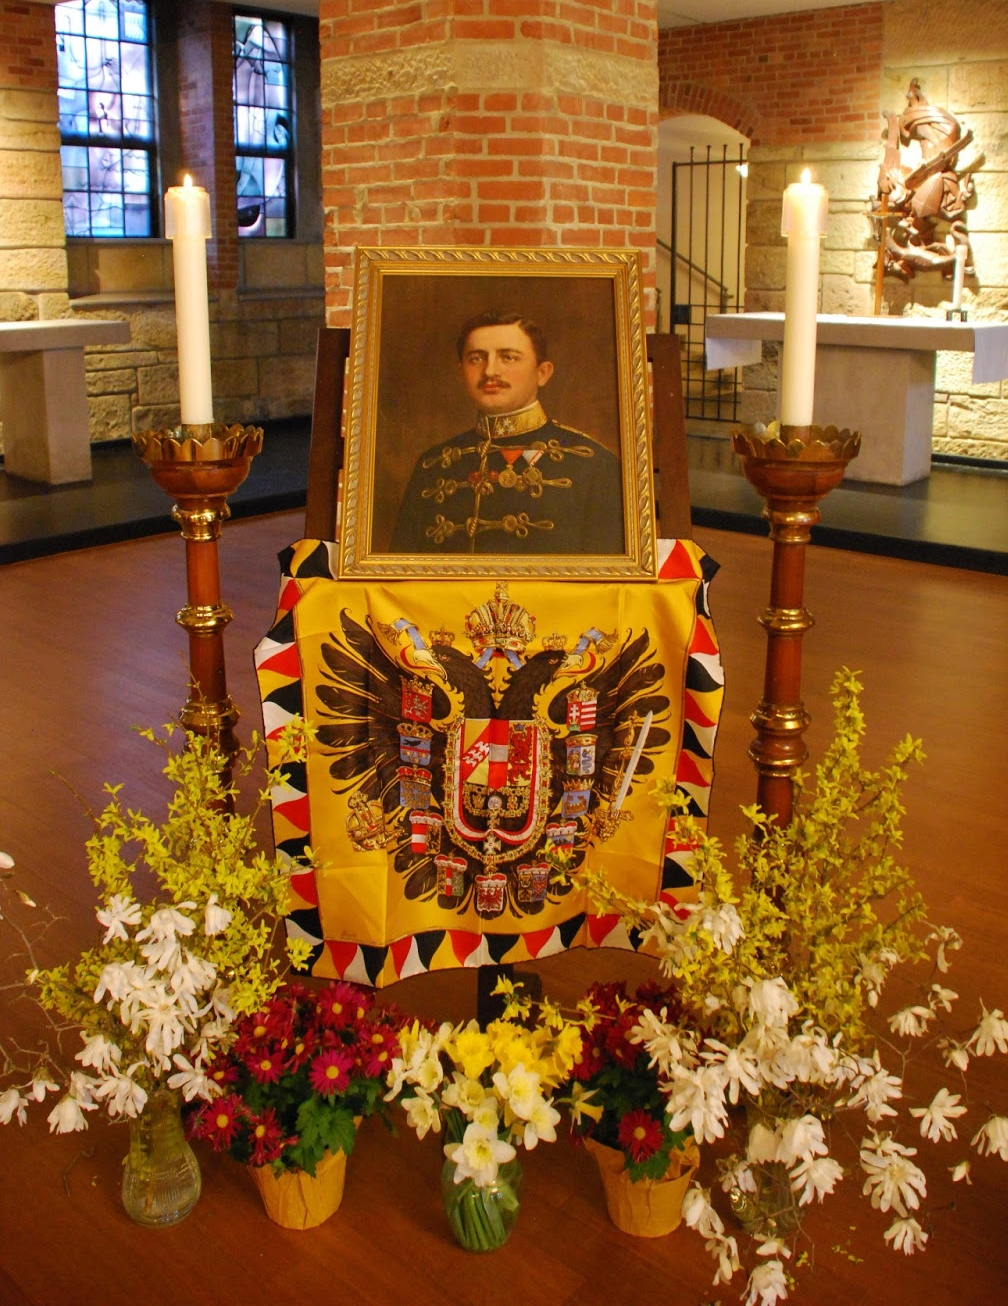 From a Votive Mass for Blessed Karl of Austria, Saint Vincent Archabbey Basilica Crypt, Latrobe, Pennsylvania